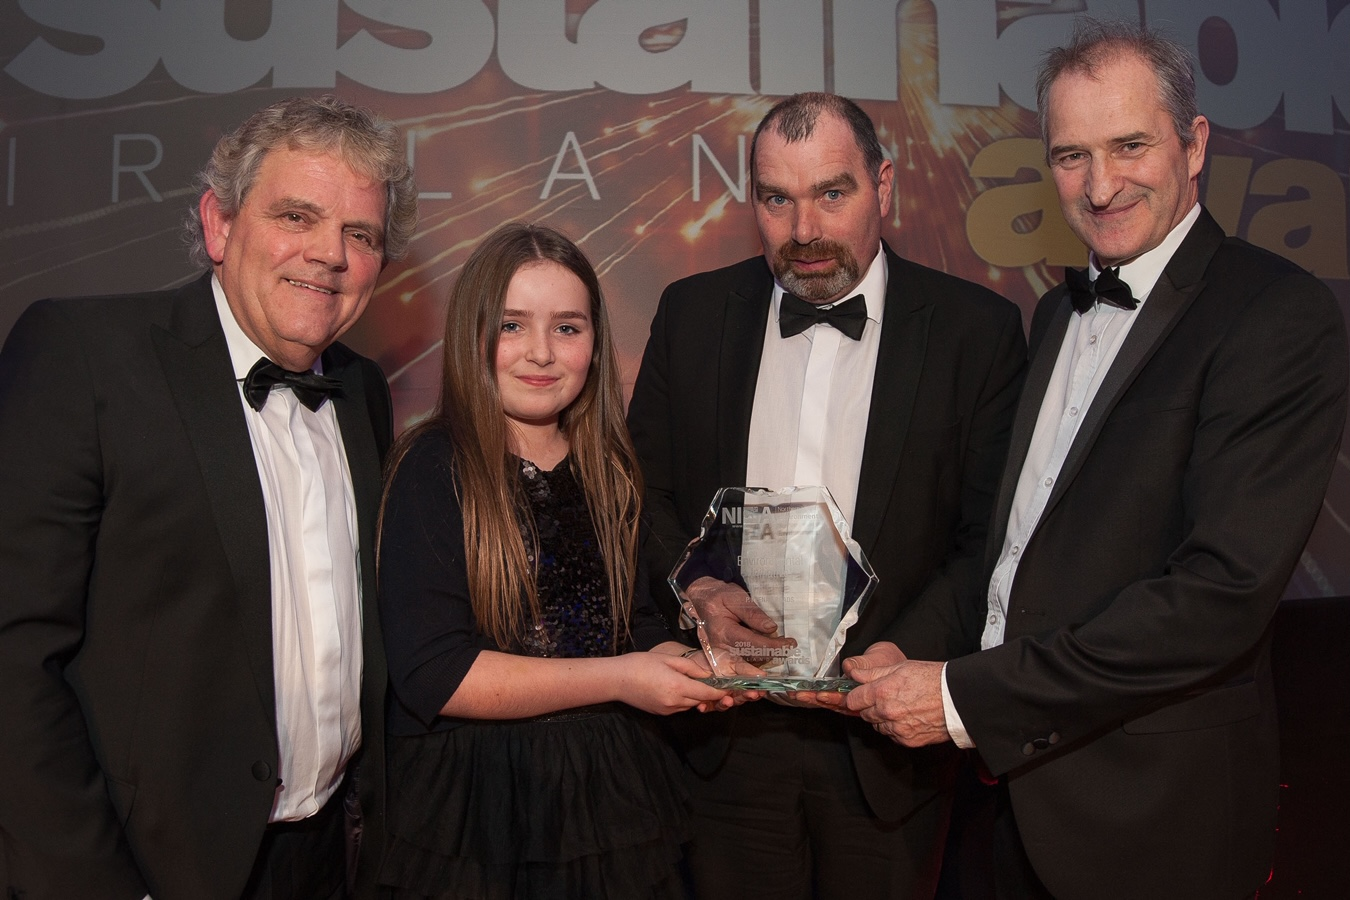 2018 Sustainable-Ireland-Environmental Project of the year Winners P. Keenan